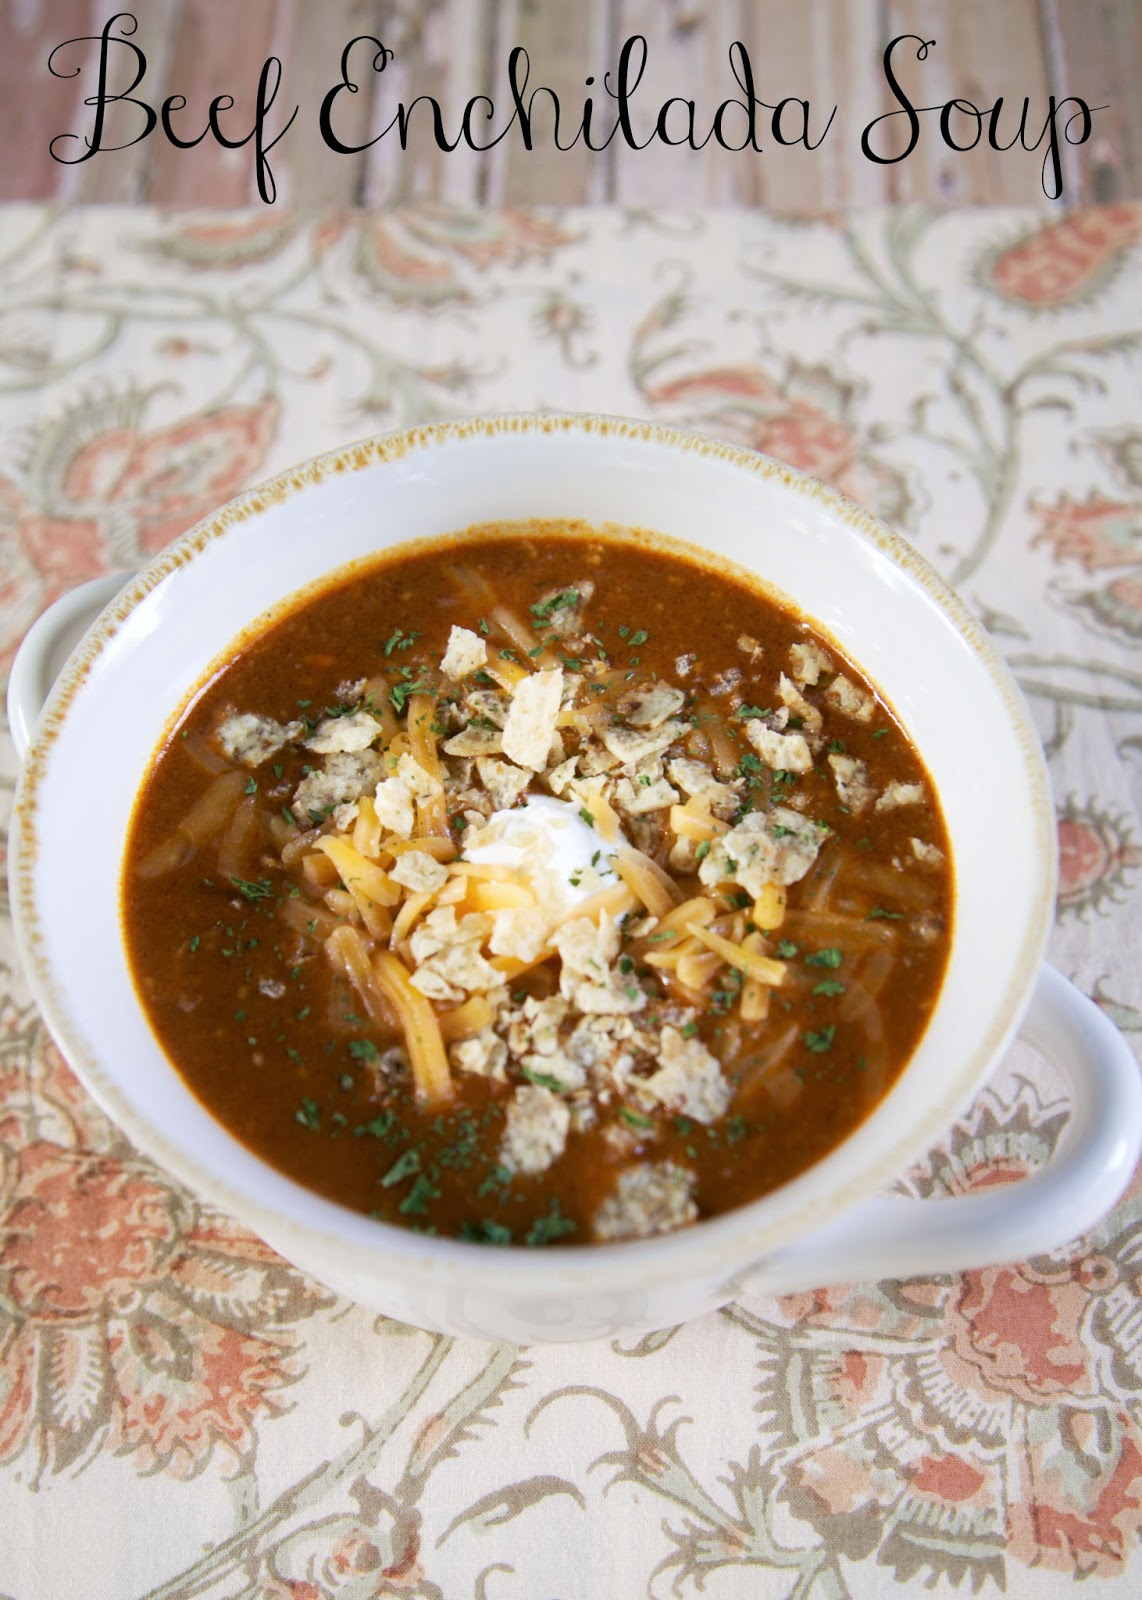 Beef Enchilada Soup made in the crock pot - so easy and tastes amazing! Stew meat, enchilada sauce, cheese soup, black beans, corn, beef broth, oregano and cheddar cheese. Throw everything in the slow cooker and dinner is done! Serve with some cornbread for an easy weeknight dinner. Can freeze and cook when ready. #soup #beef #slowcooker #crockpot #mexican #freezermeal